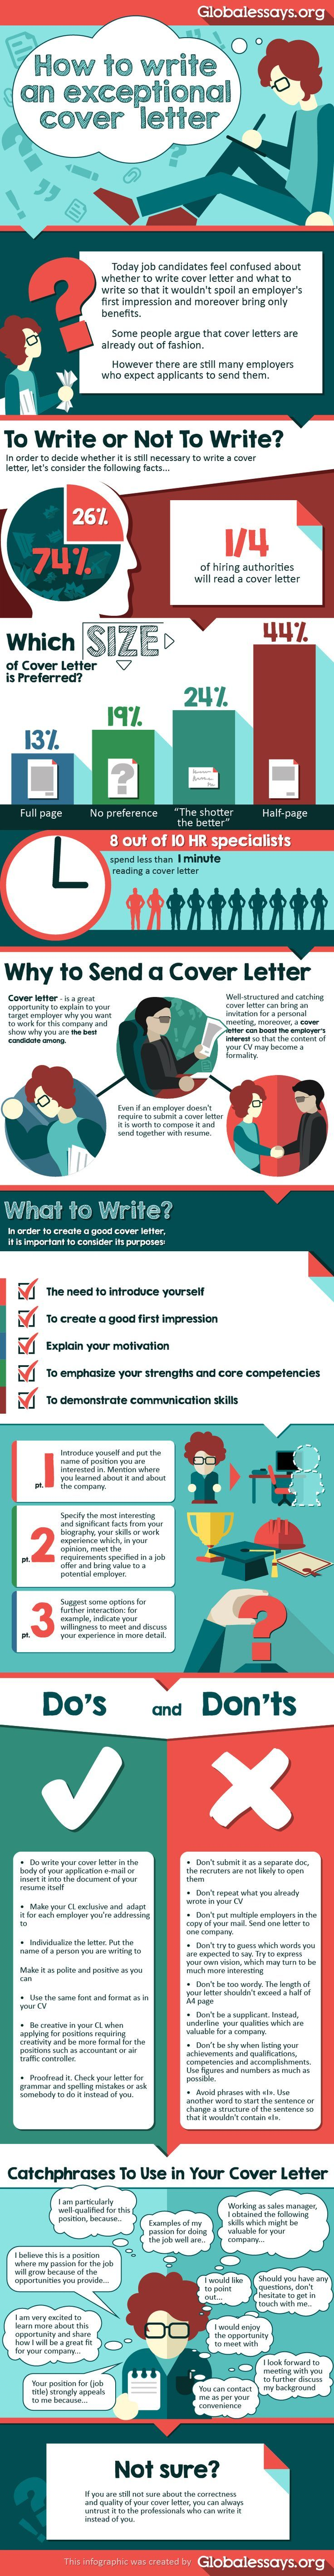 A cover letter can make or break you!